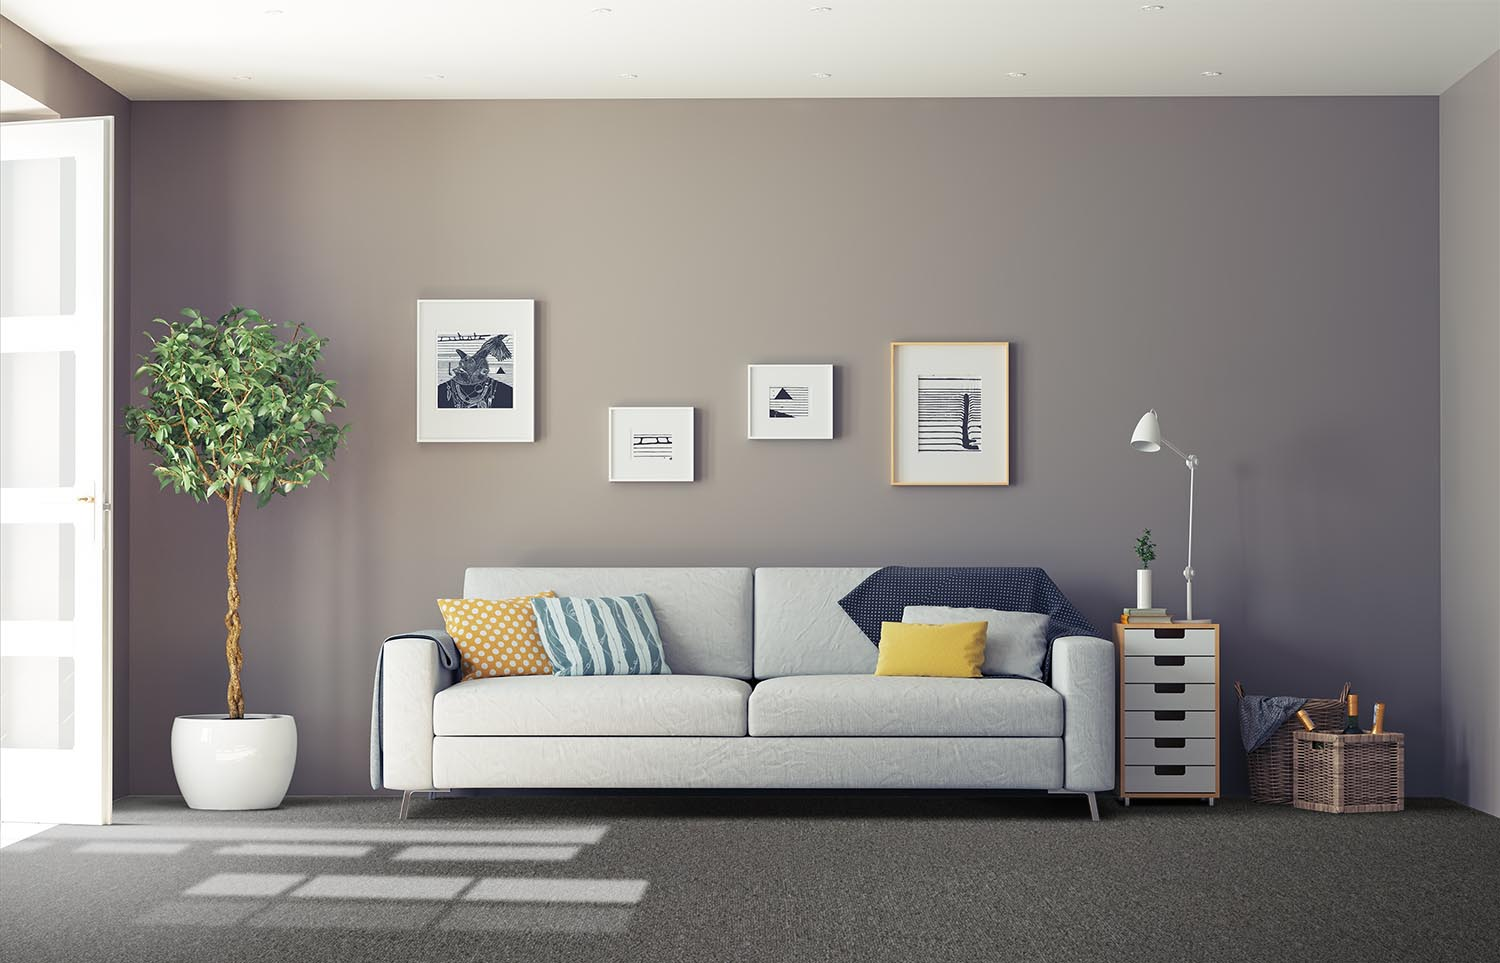 Influence - Mirror That classic living room